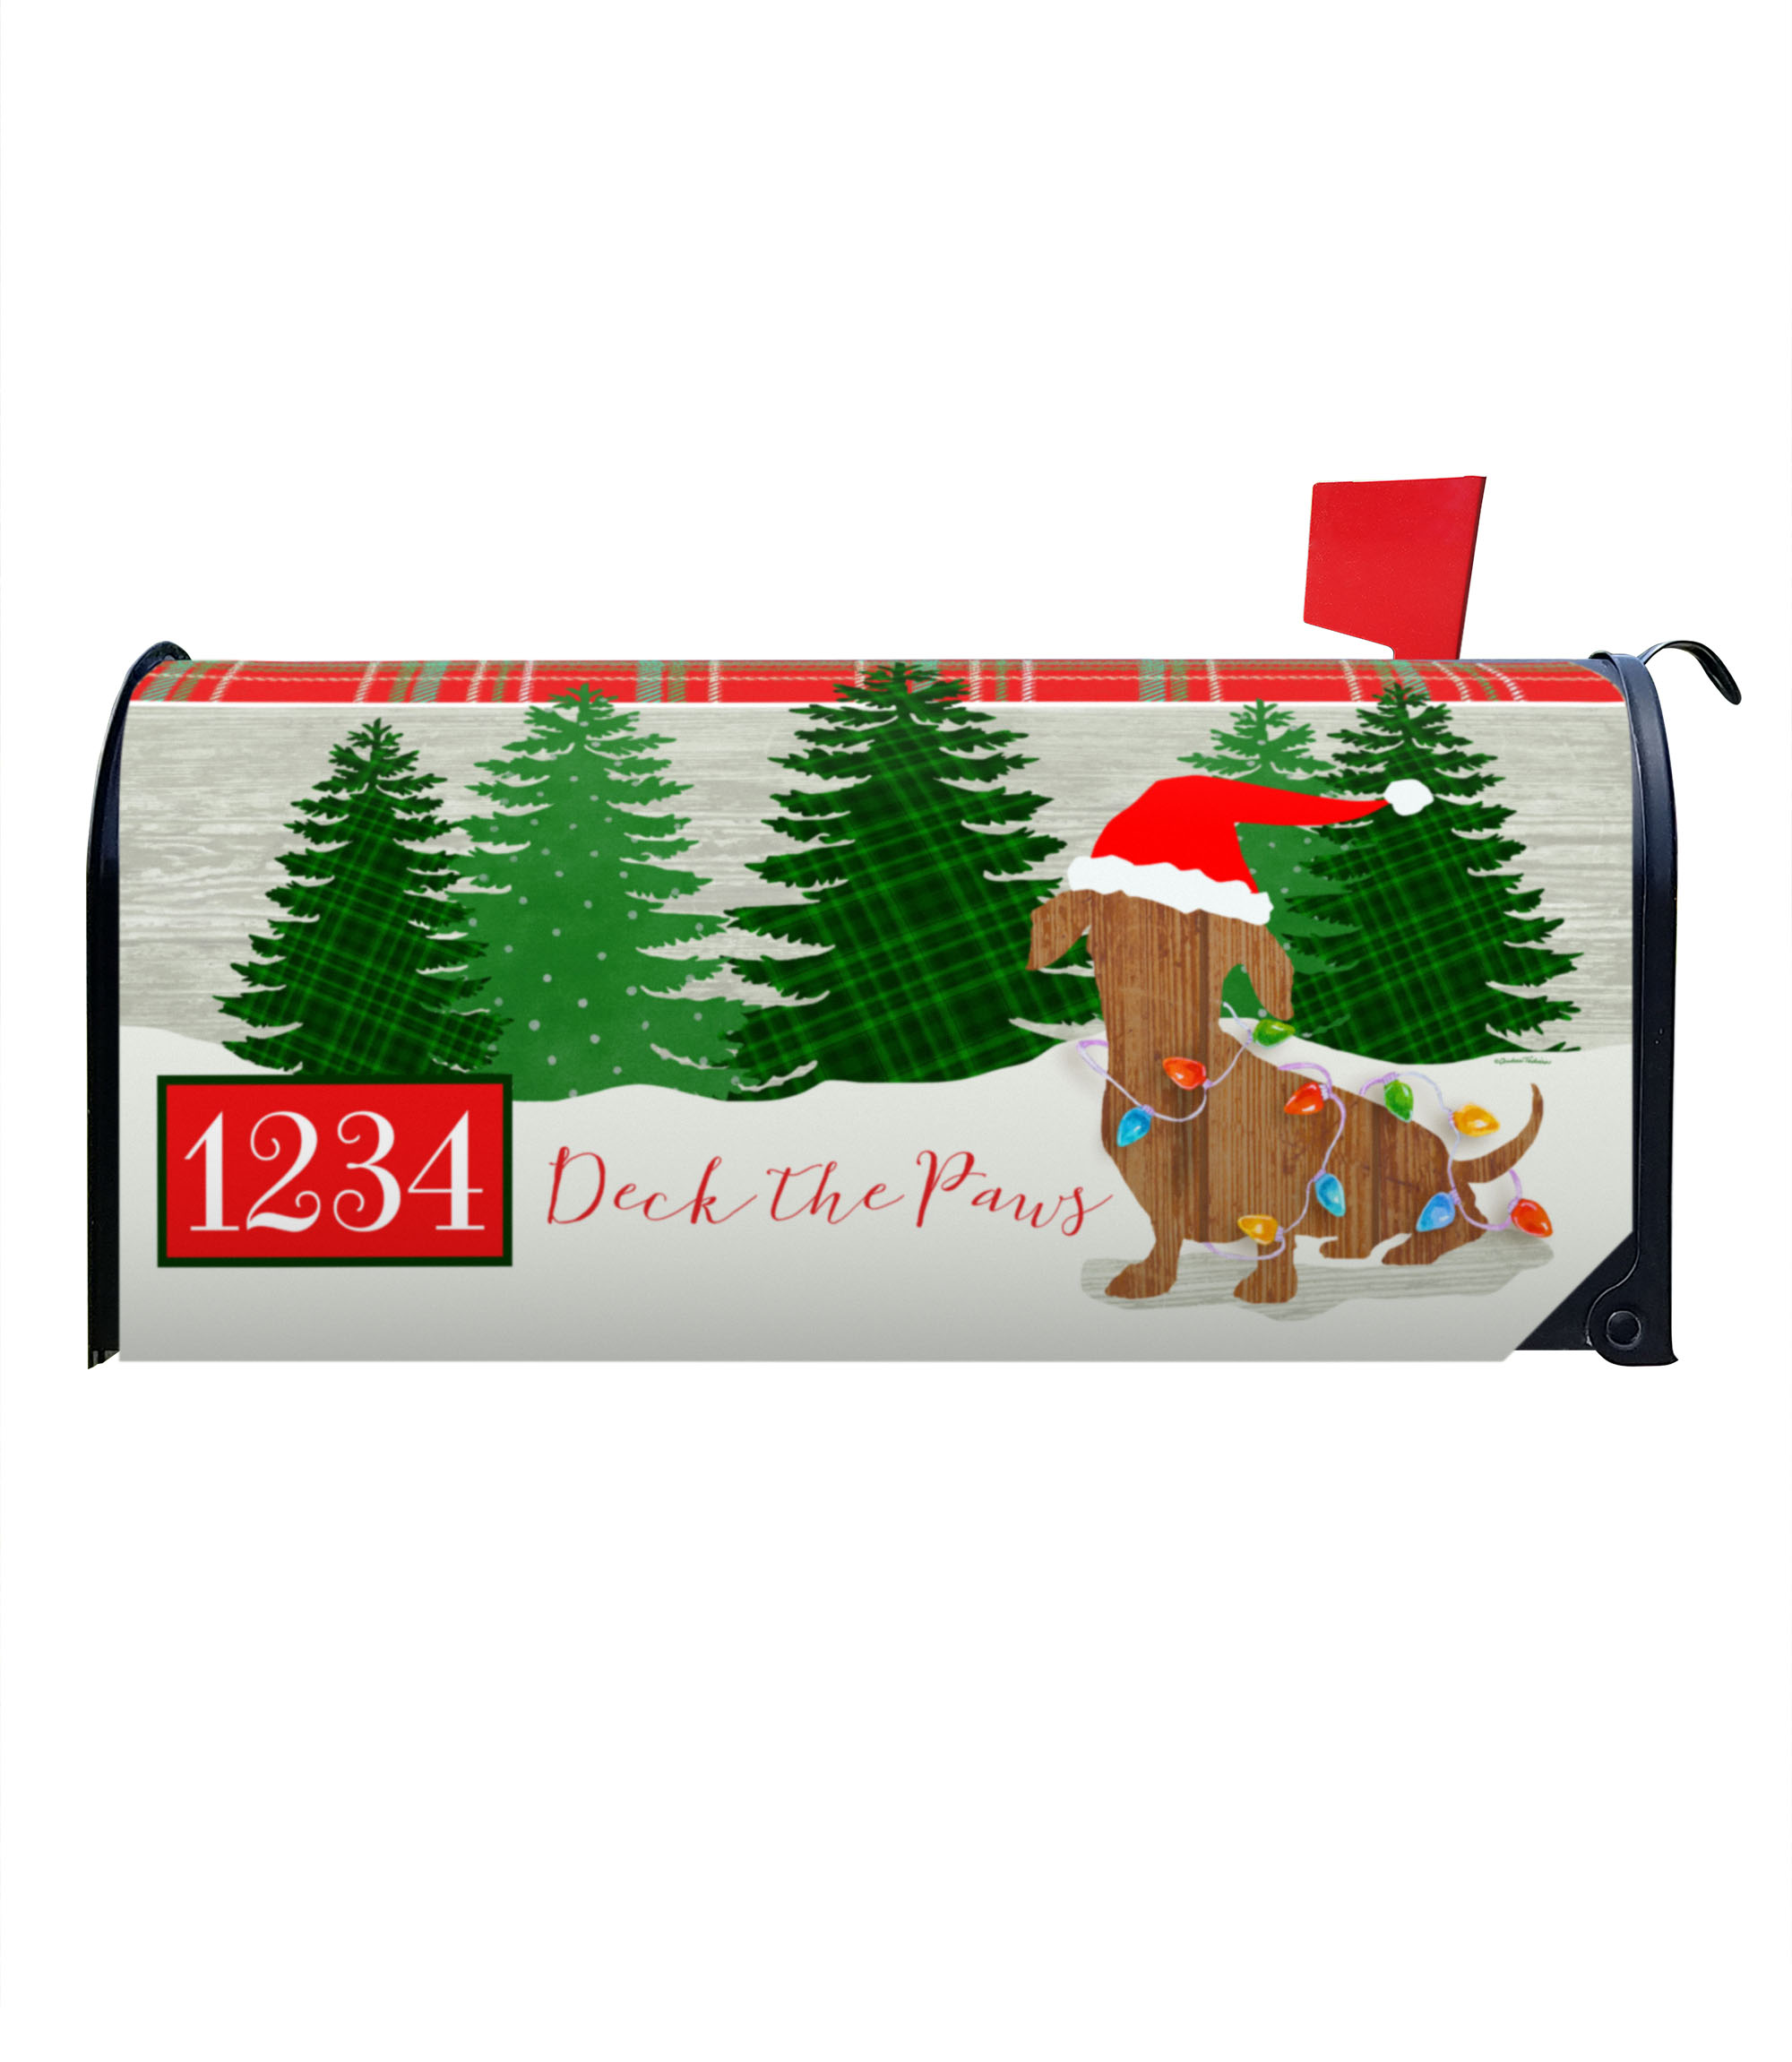 Deck The Paws Dachsund Magnetic Mailbox Cover 6 5 W X 8 5 H X 19 L Custom Printed Flags Flagology Com